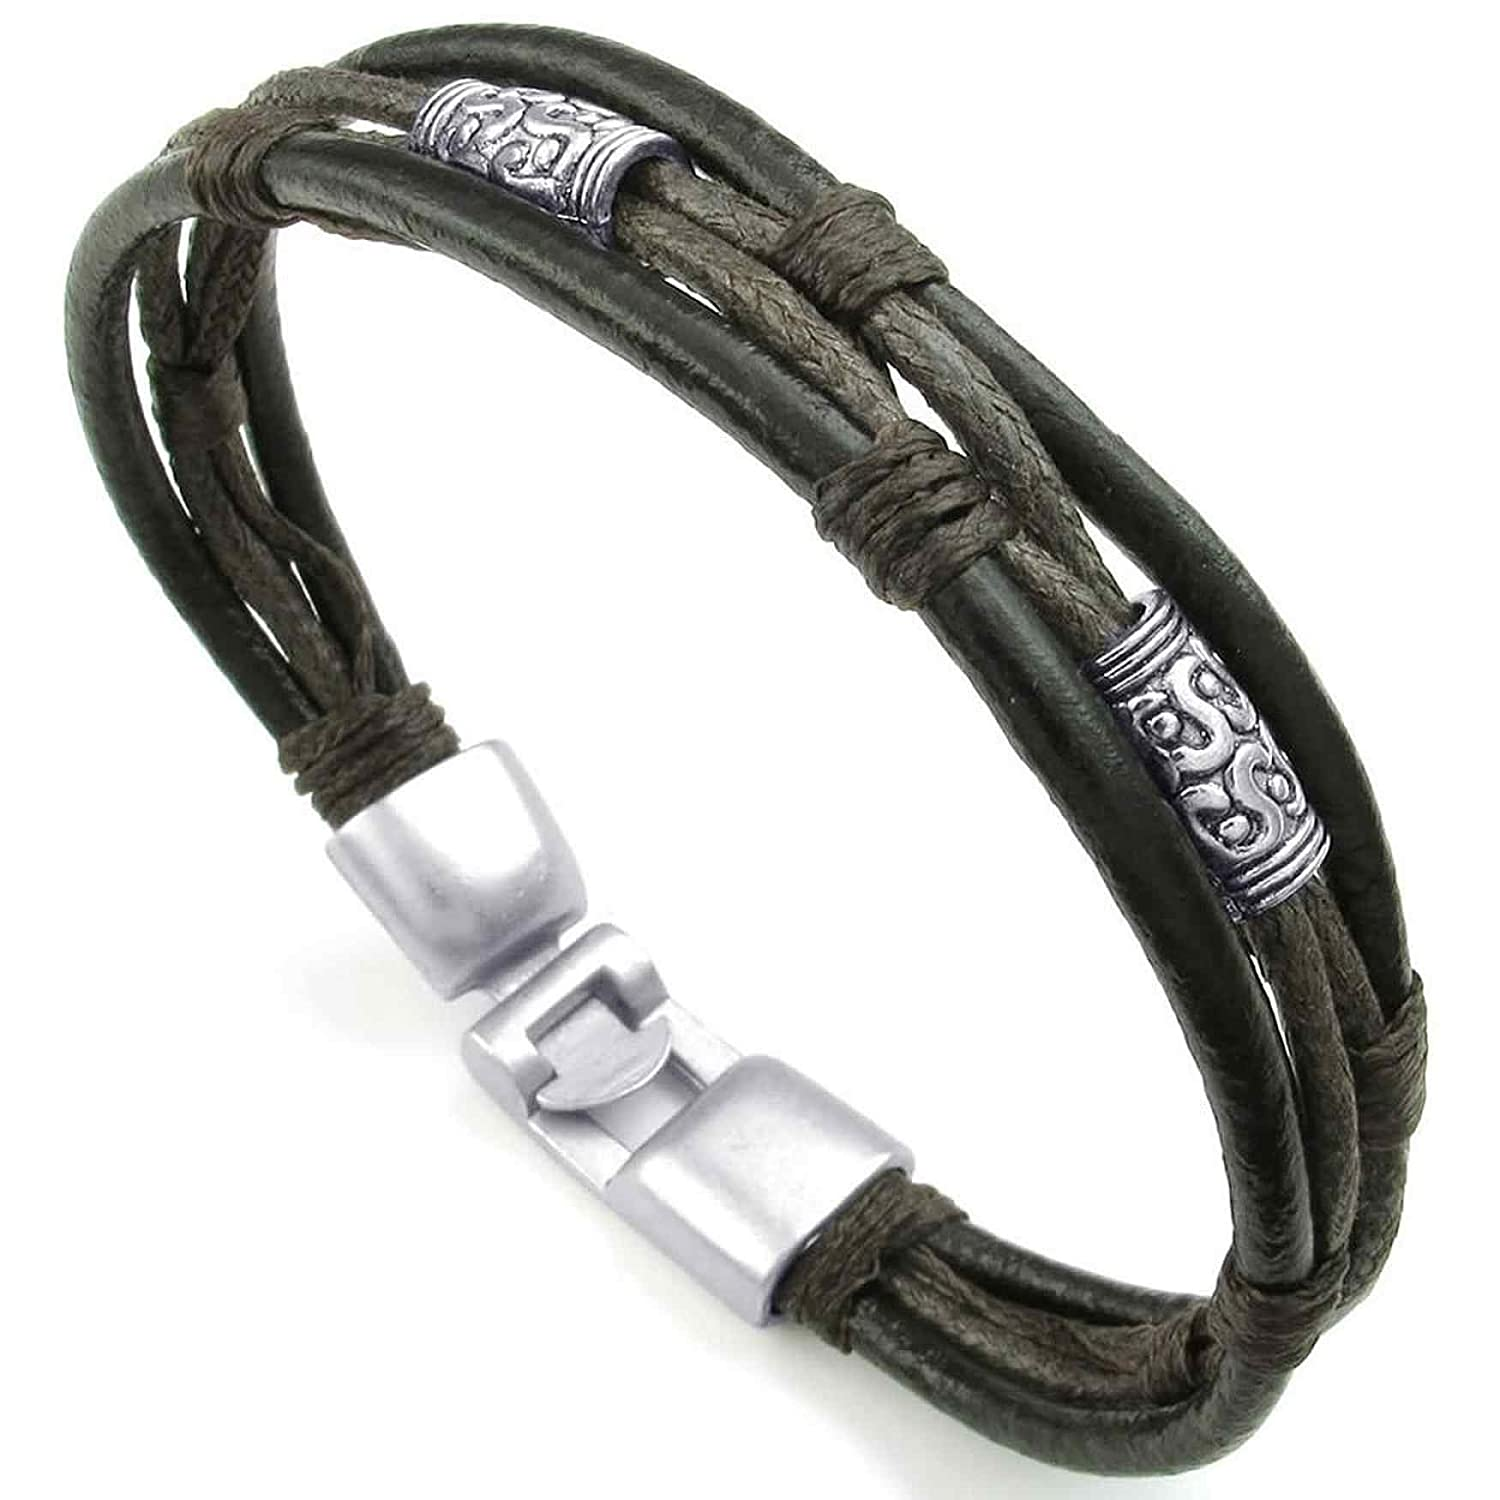 ANAZOZ Stainless Steel Black Cuff Bangle Brown Braided Rope Bracelet Tribal Leather Mens Womens Jewelry